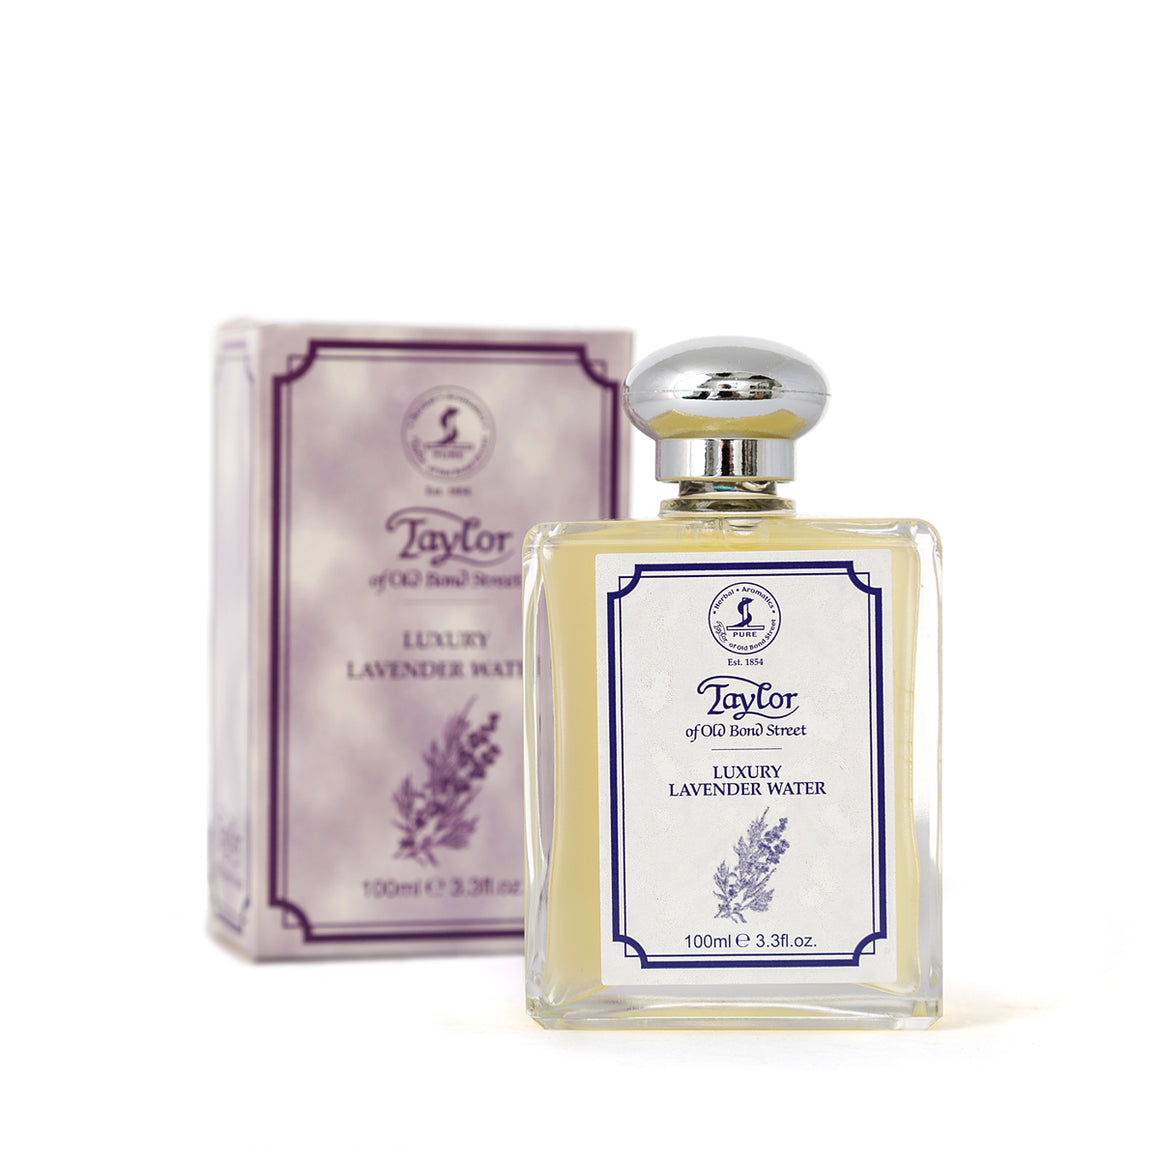 Luxury Lavender Water 100ml